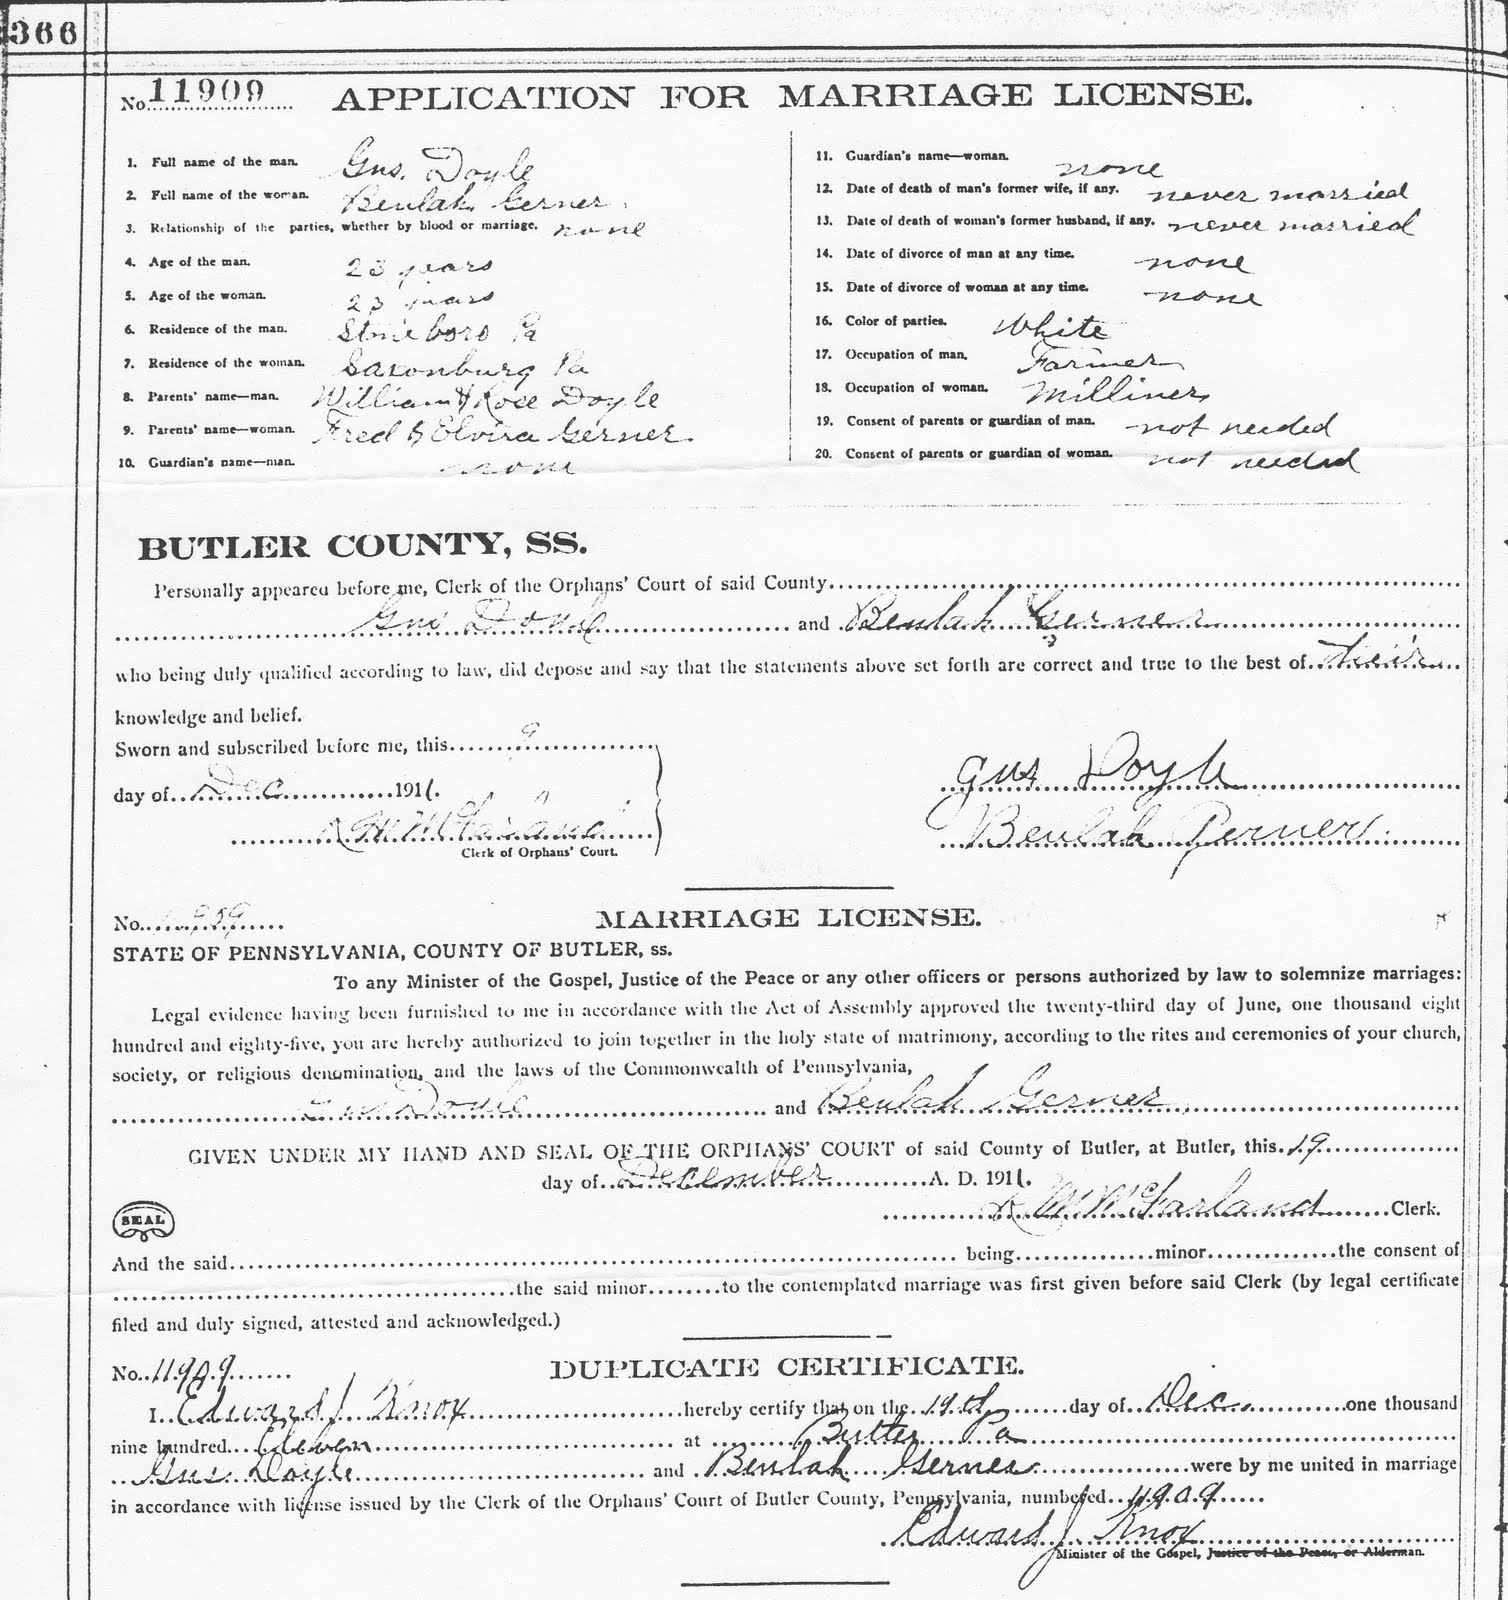 My Ancestors and Me: Beulah Gerner & Gust Doyle - marriage ...